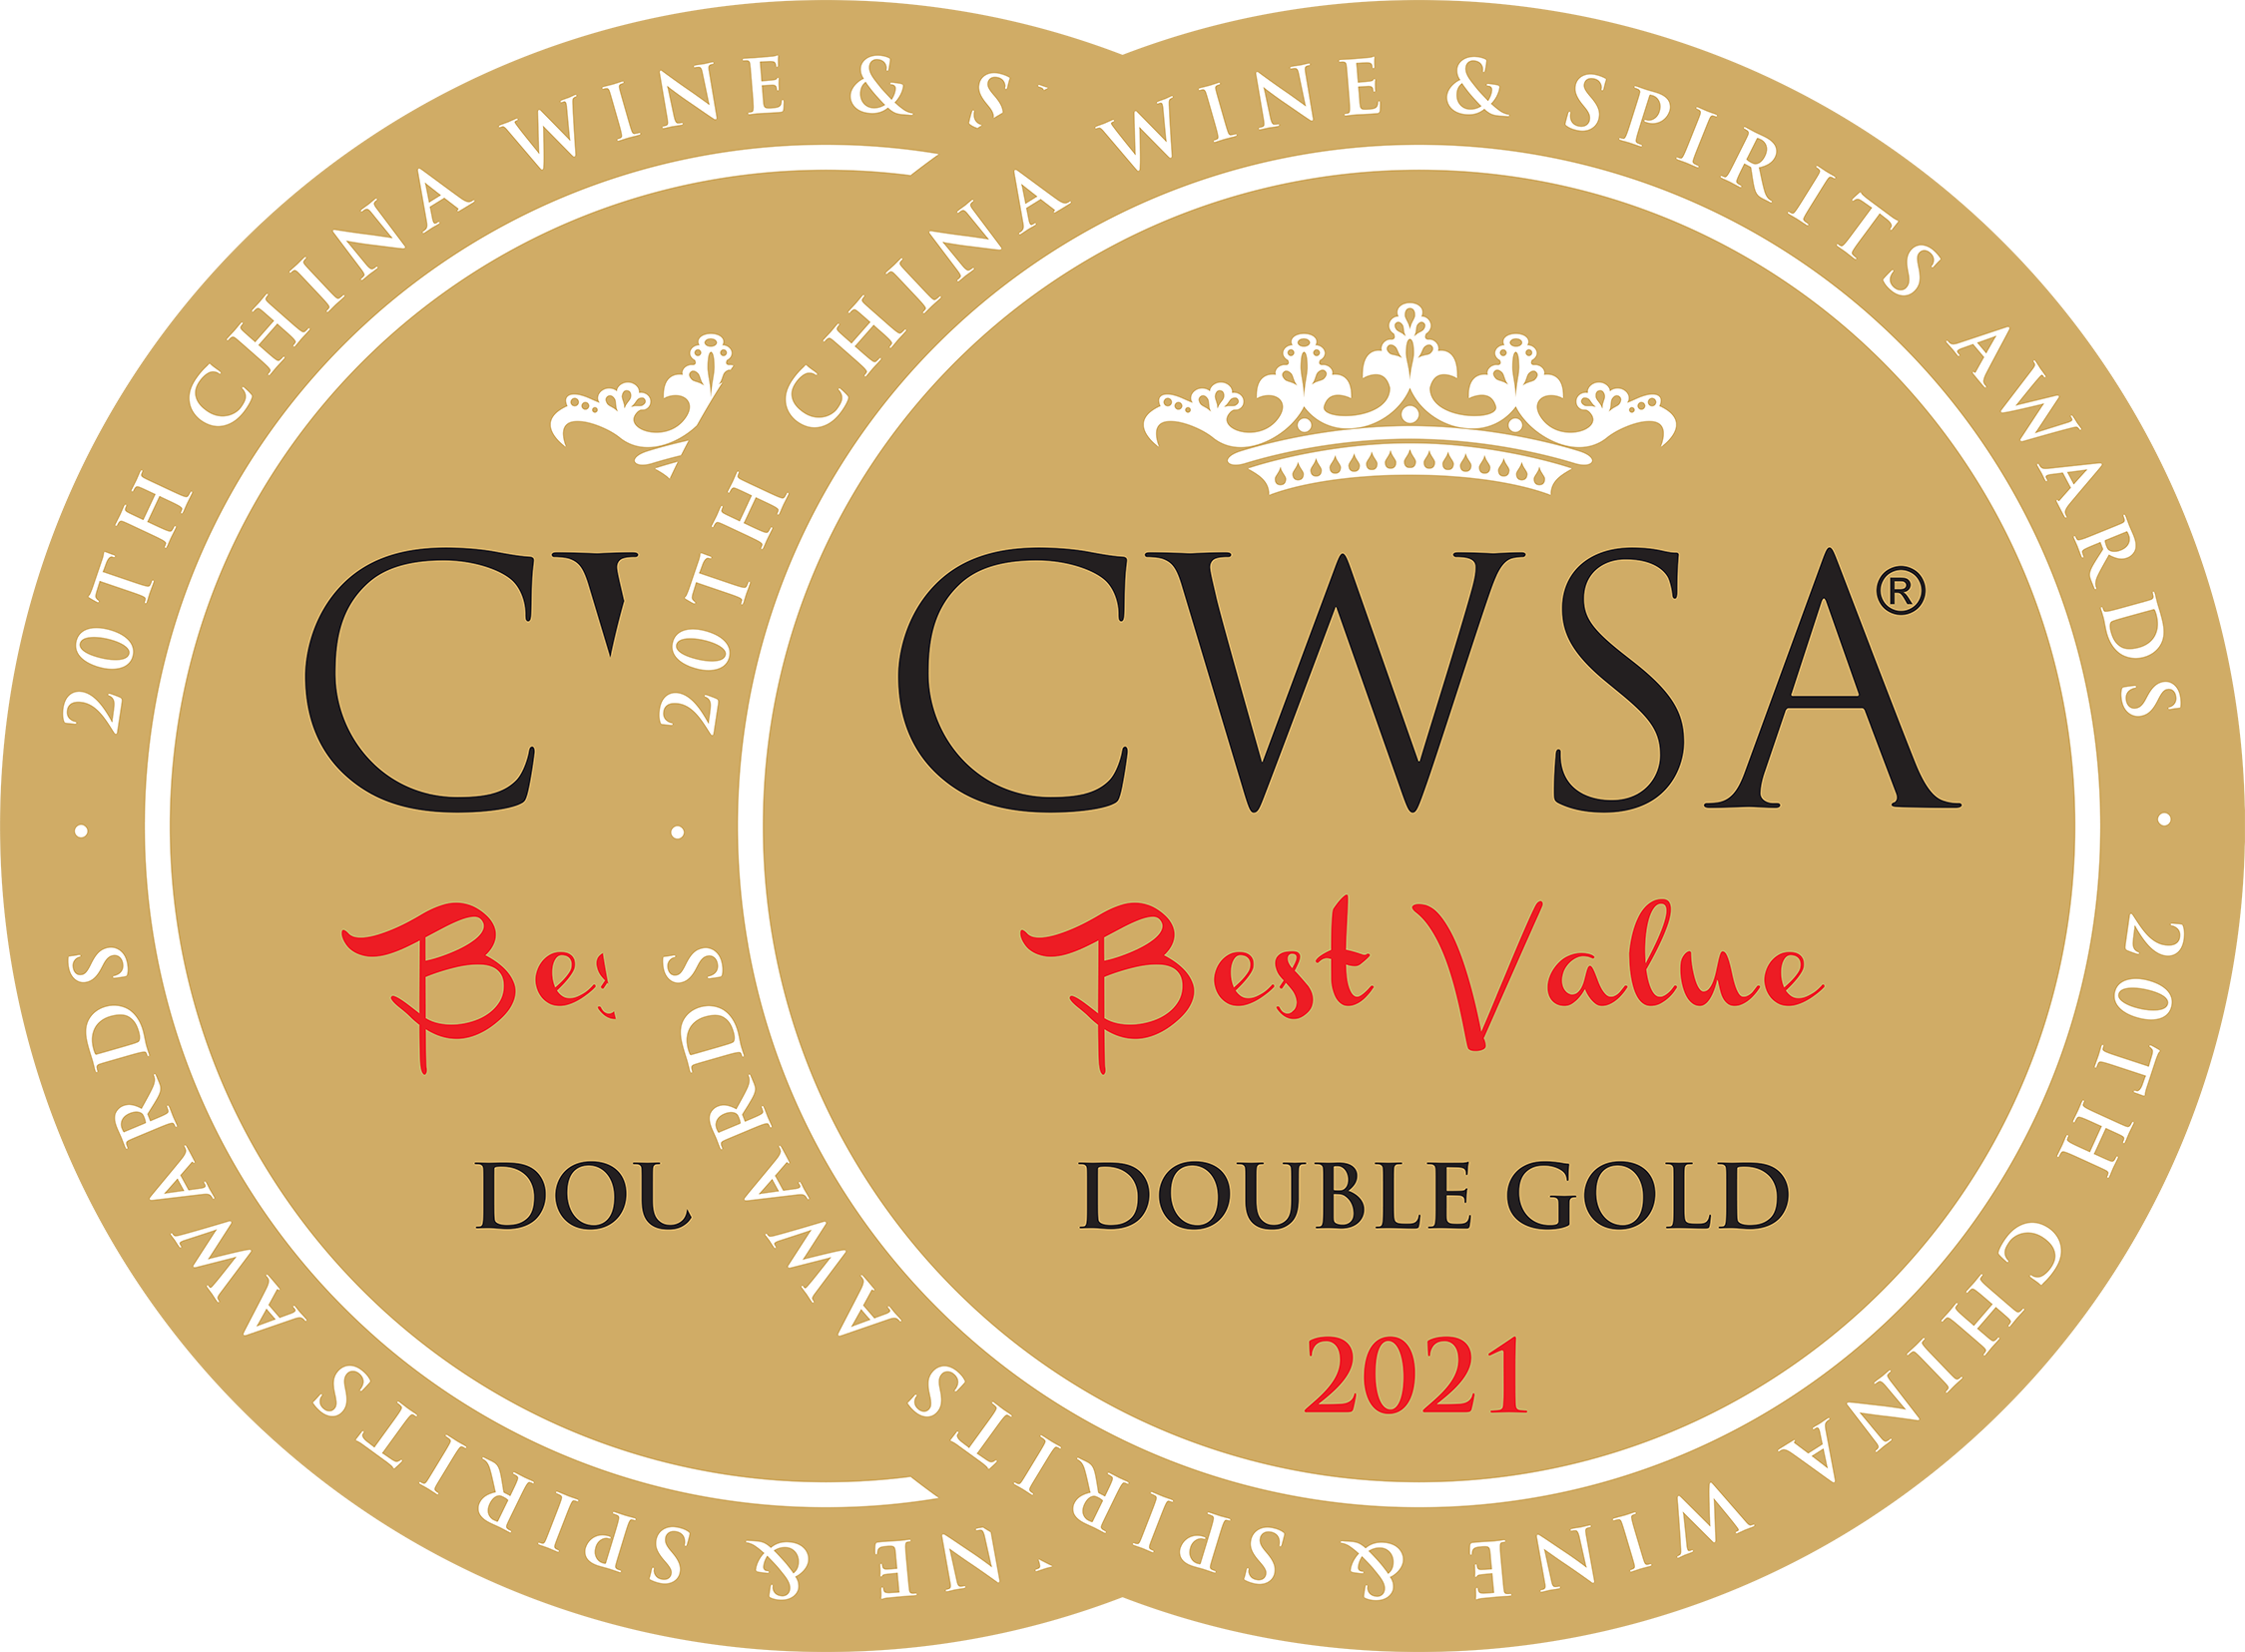 CWSA-BV-2021-stickers-Double-Gold-Medal